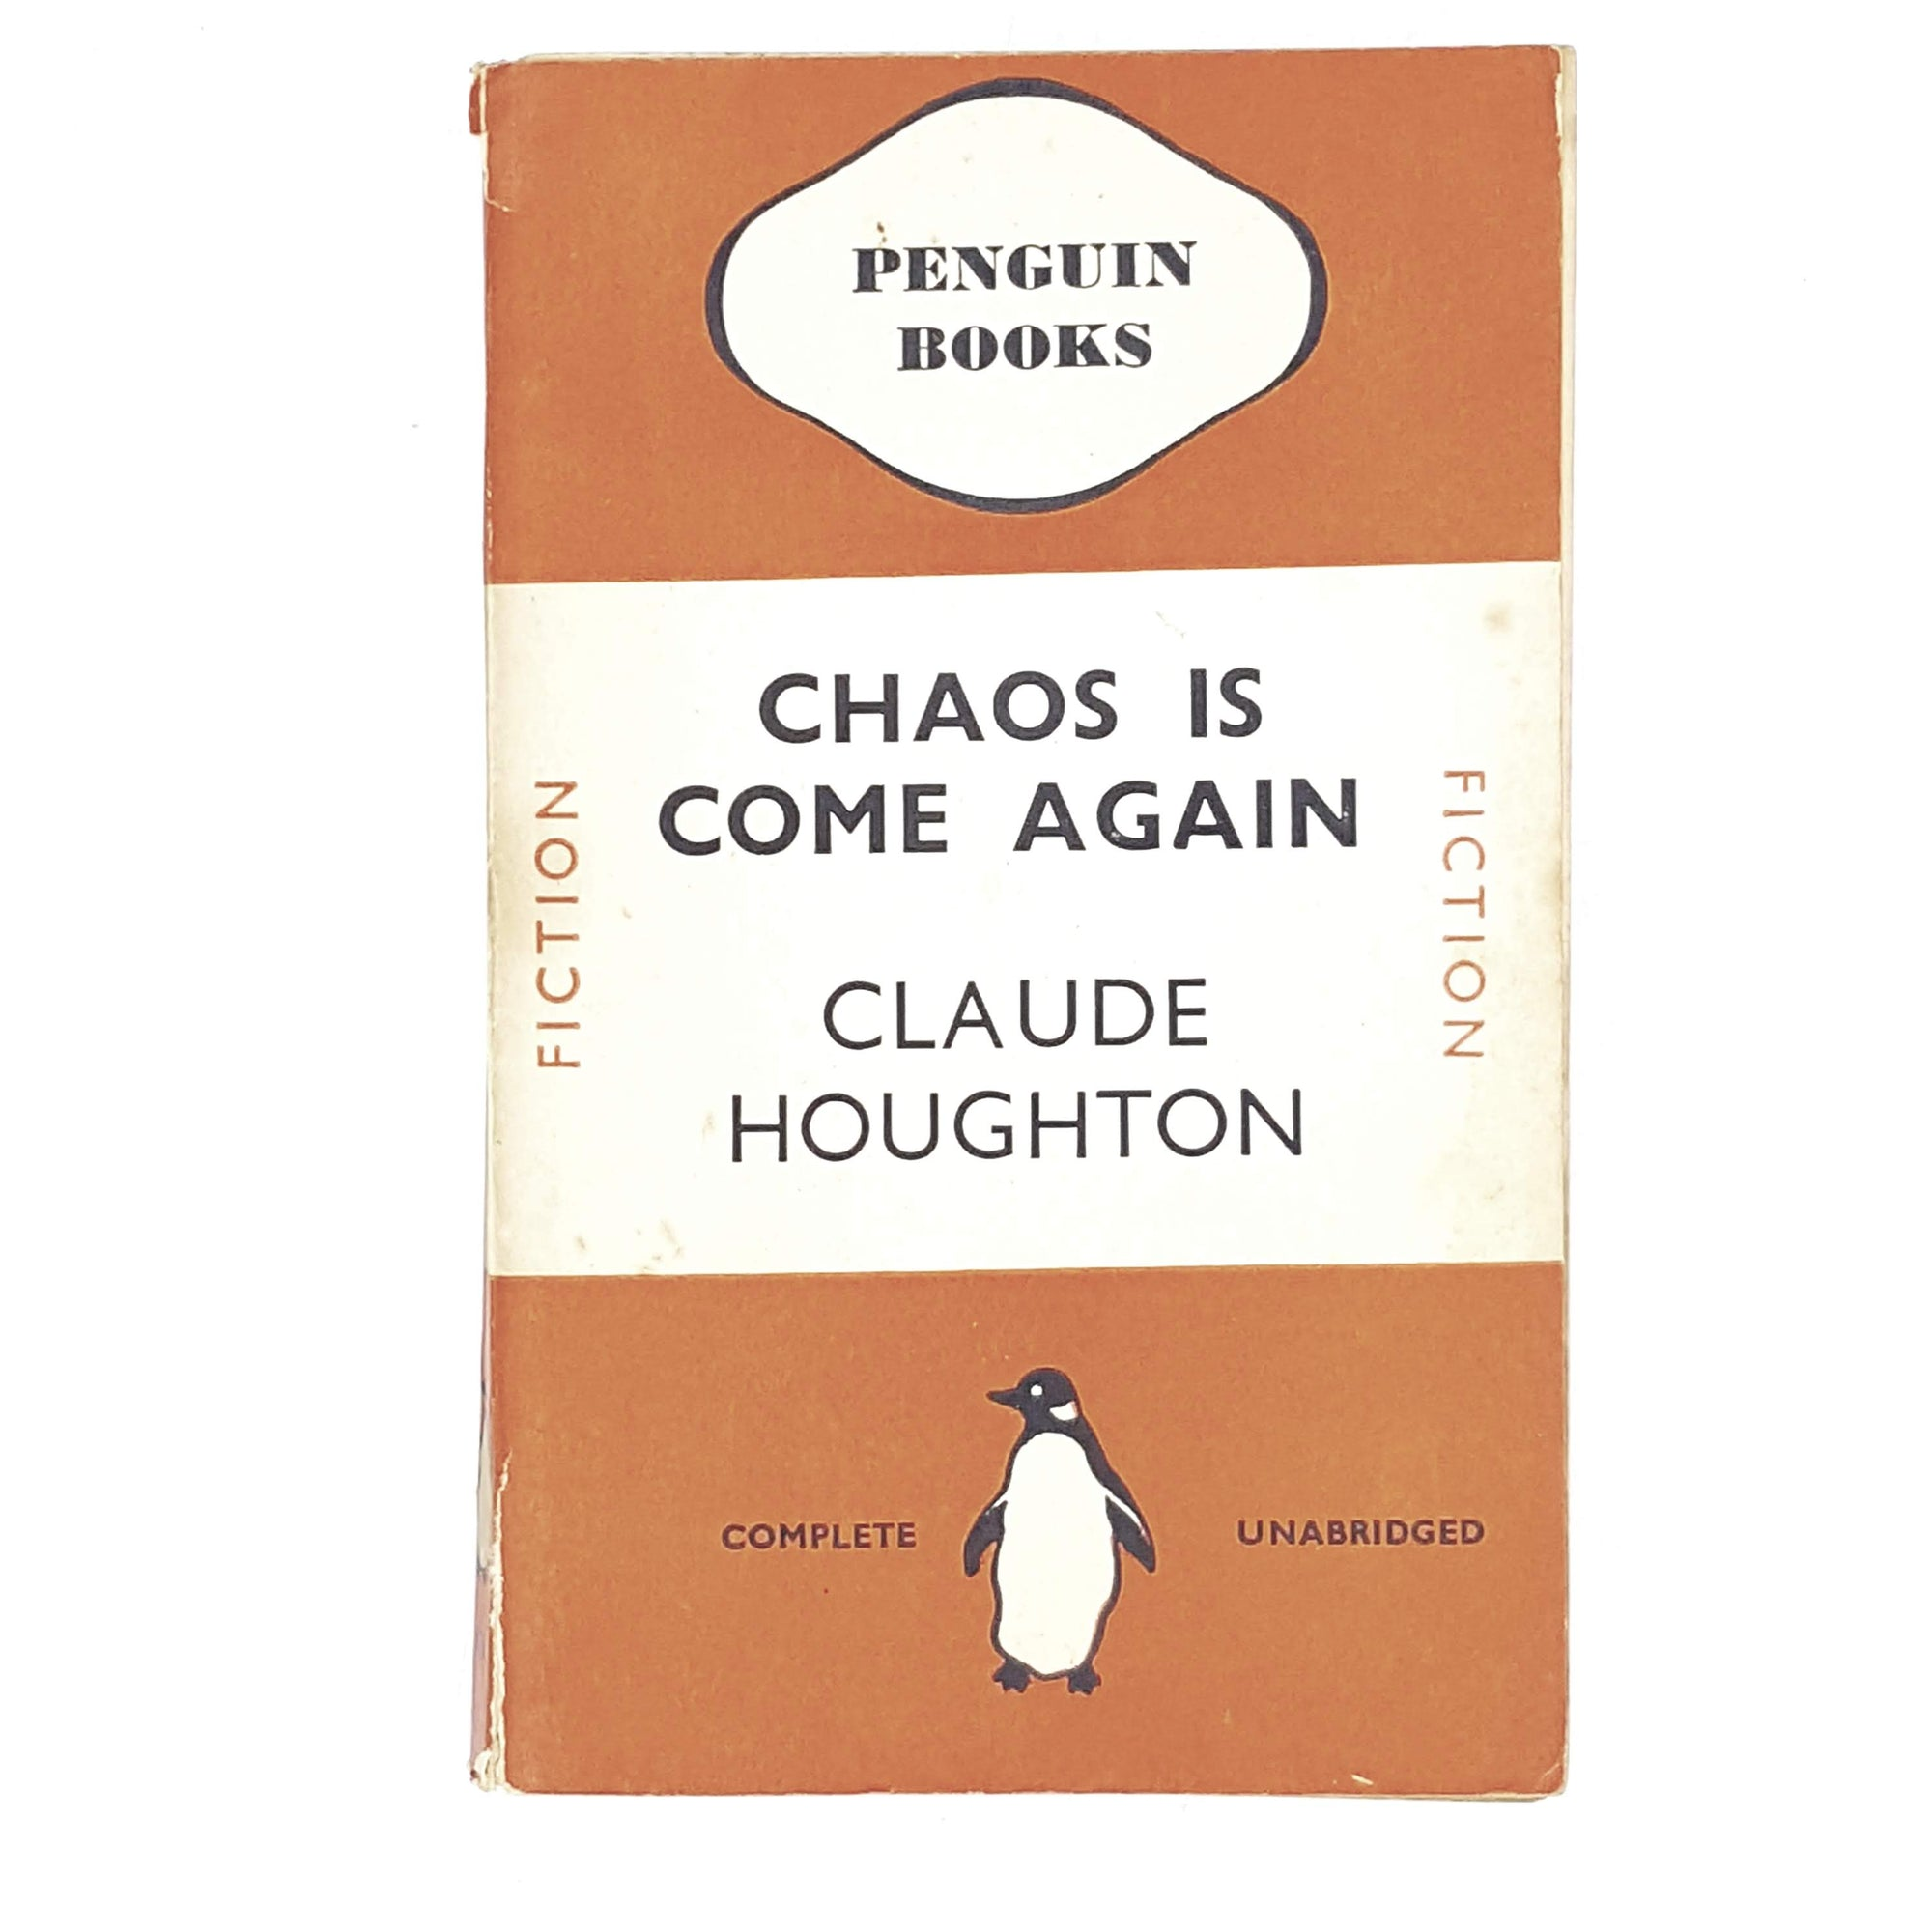 Vintage Penguin Chaos is Come Again by Claude Houghton 1938